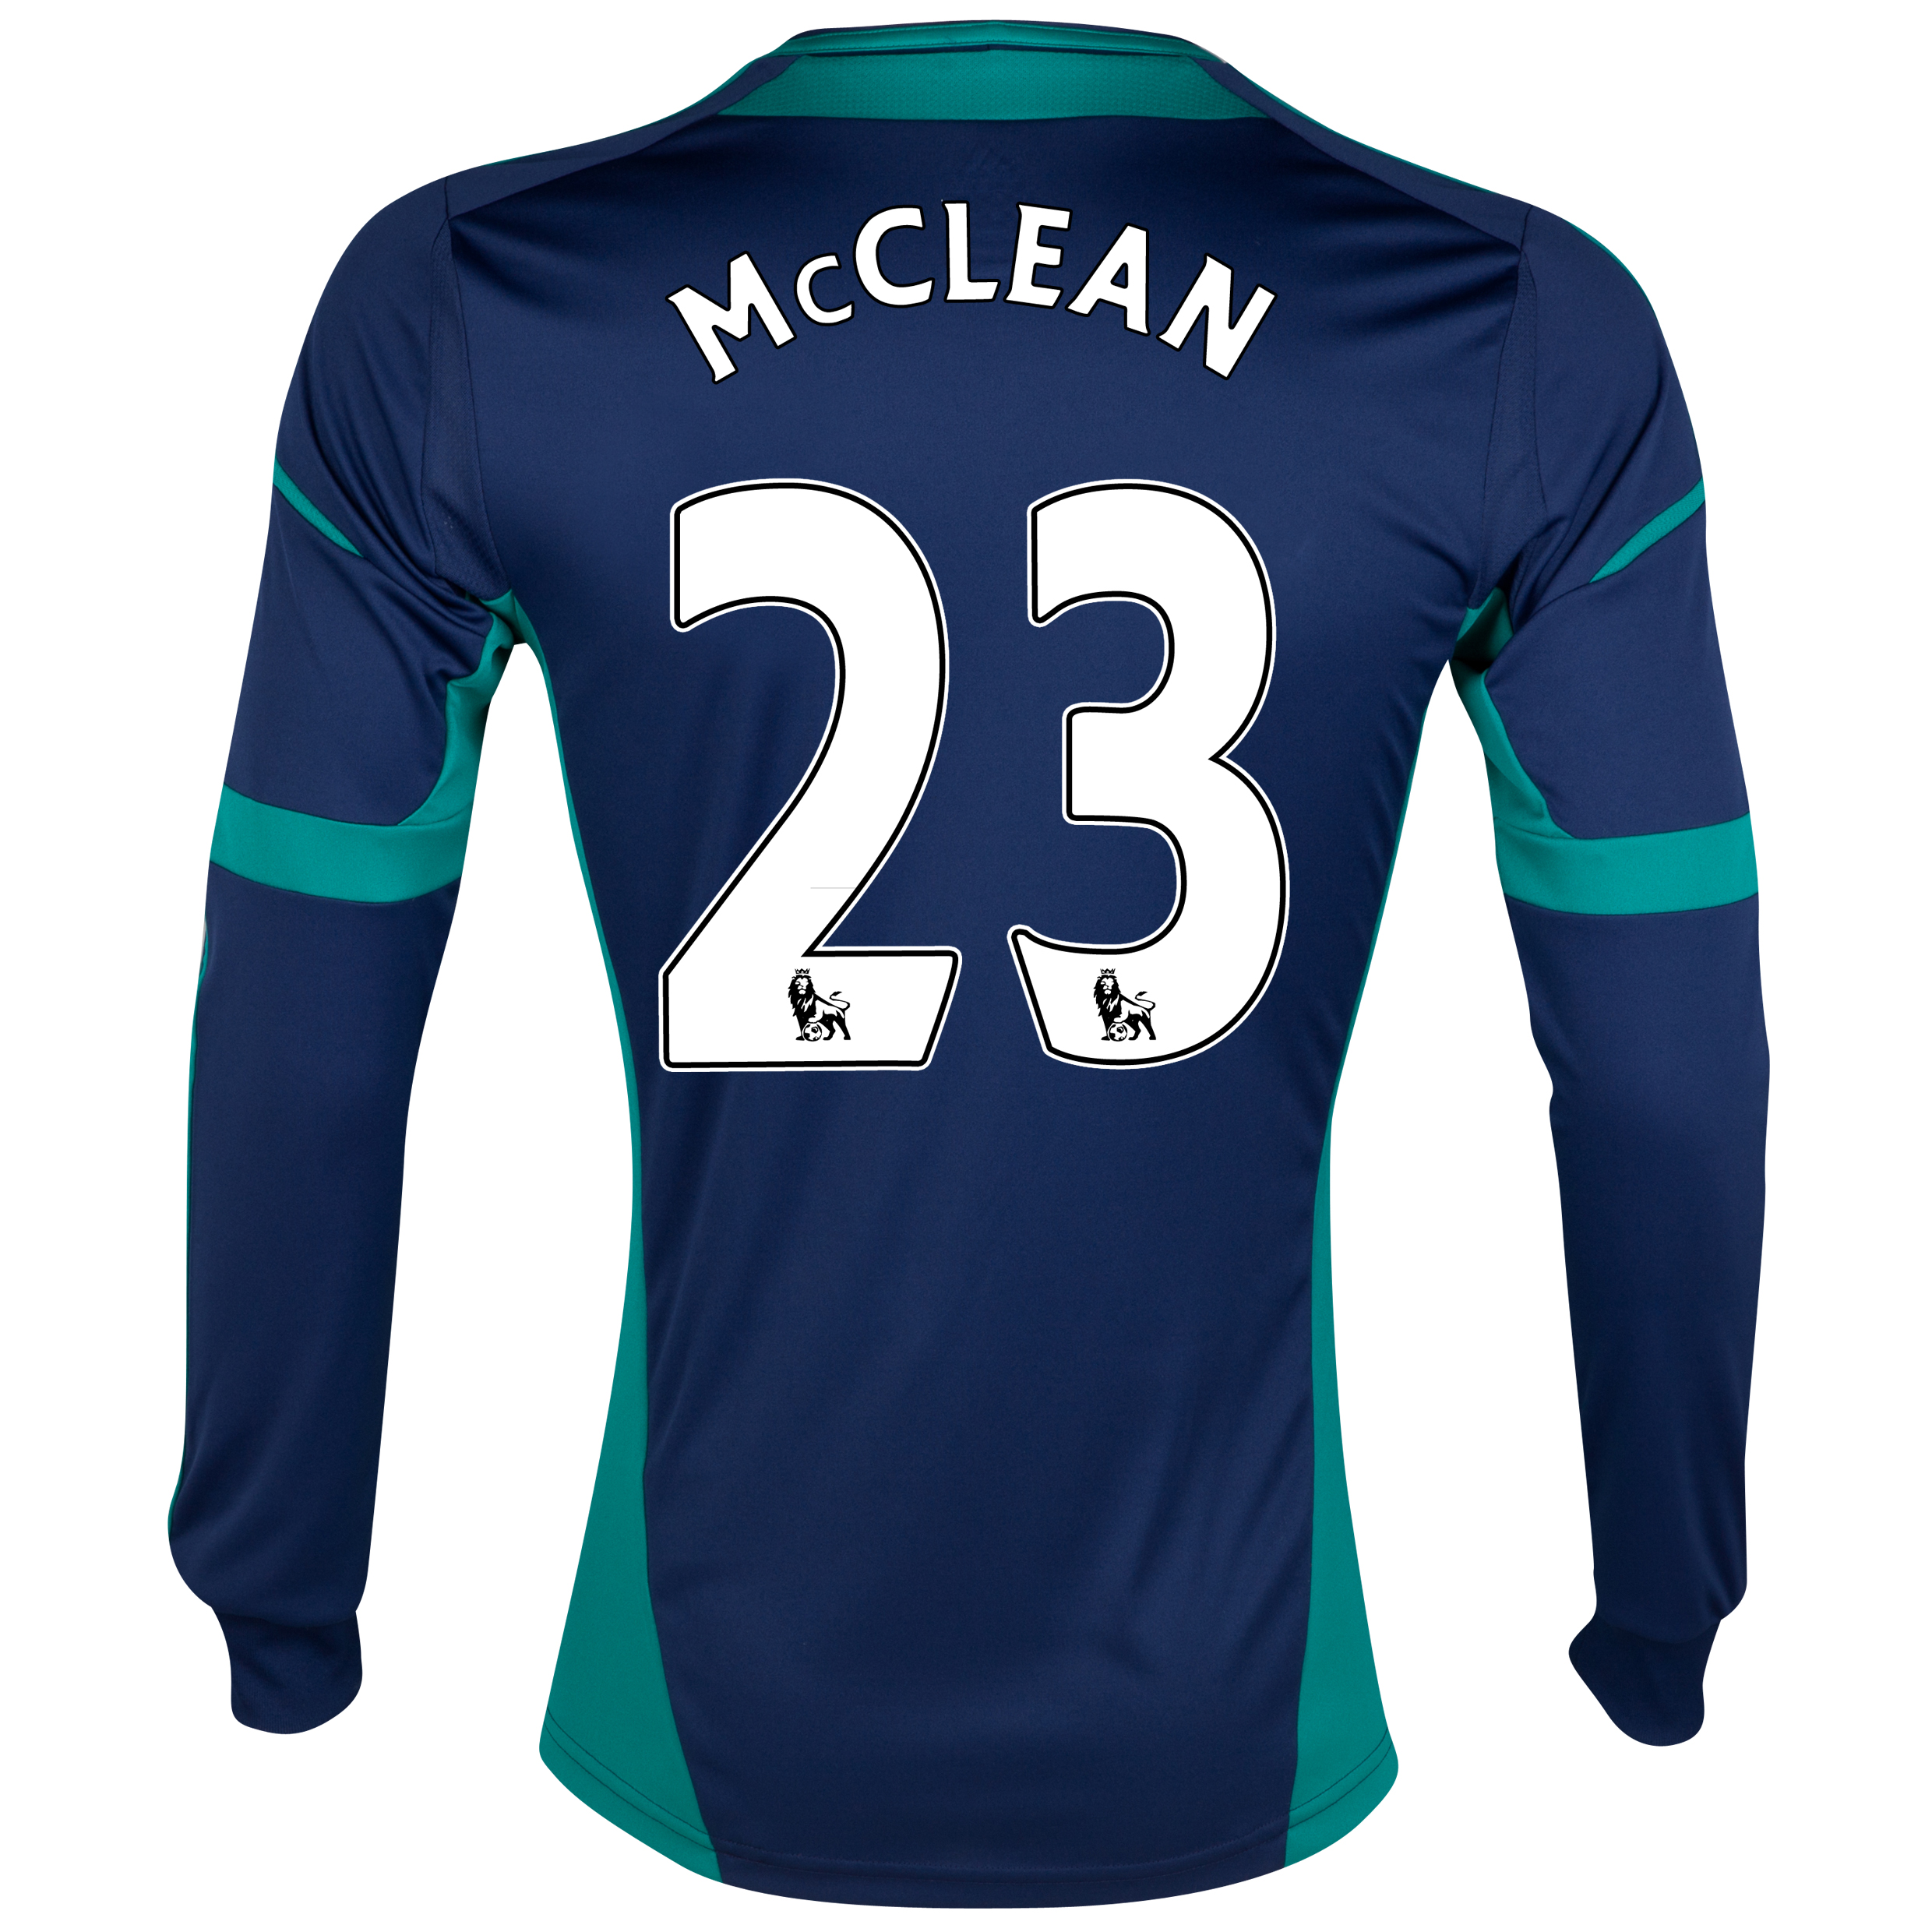 Sunderland Away Shirt 2012/13 - Long Sleeved - Junior with McClean 23 printing